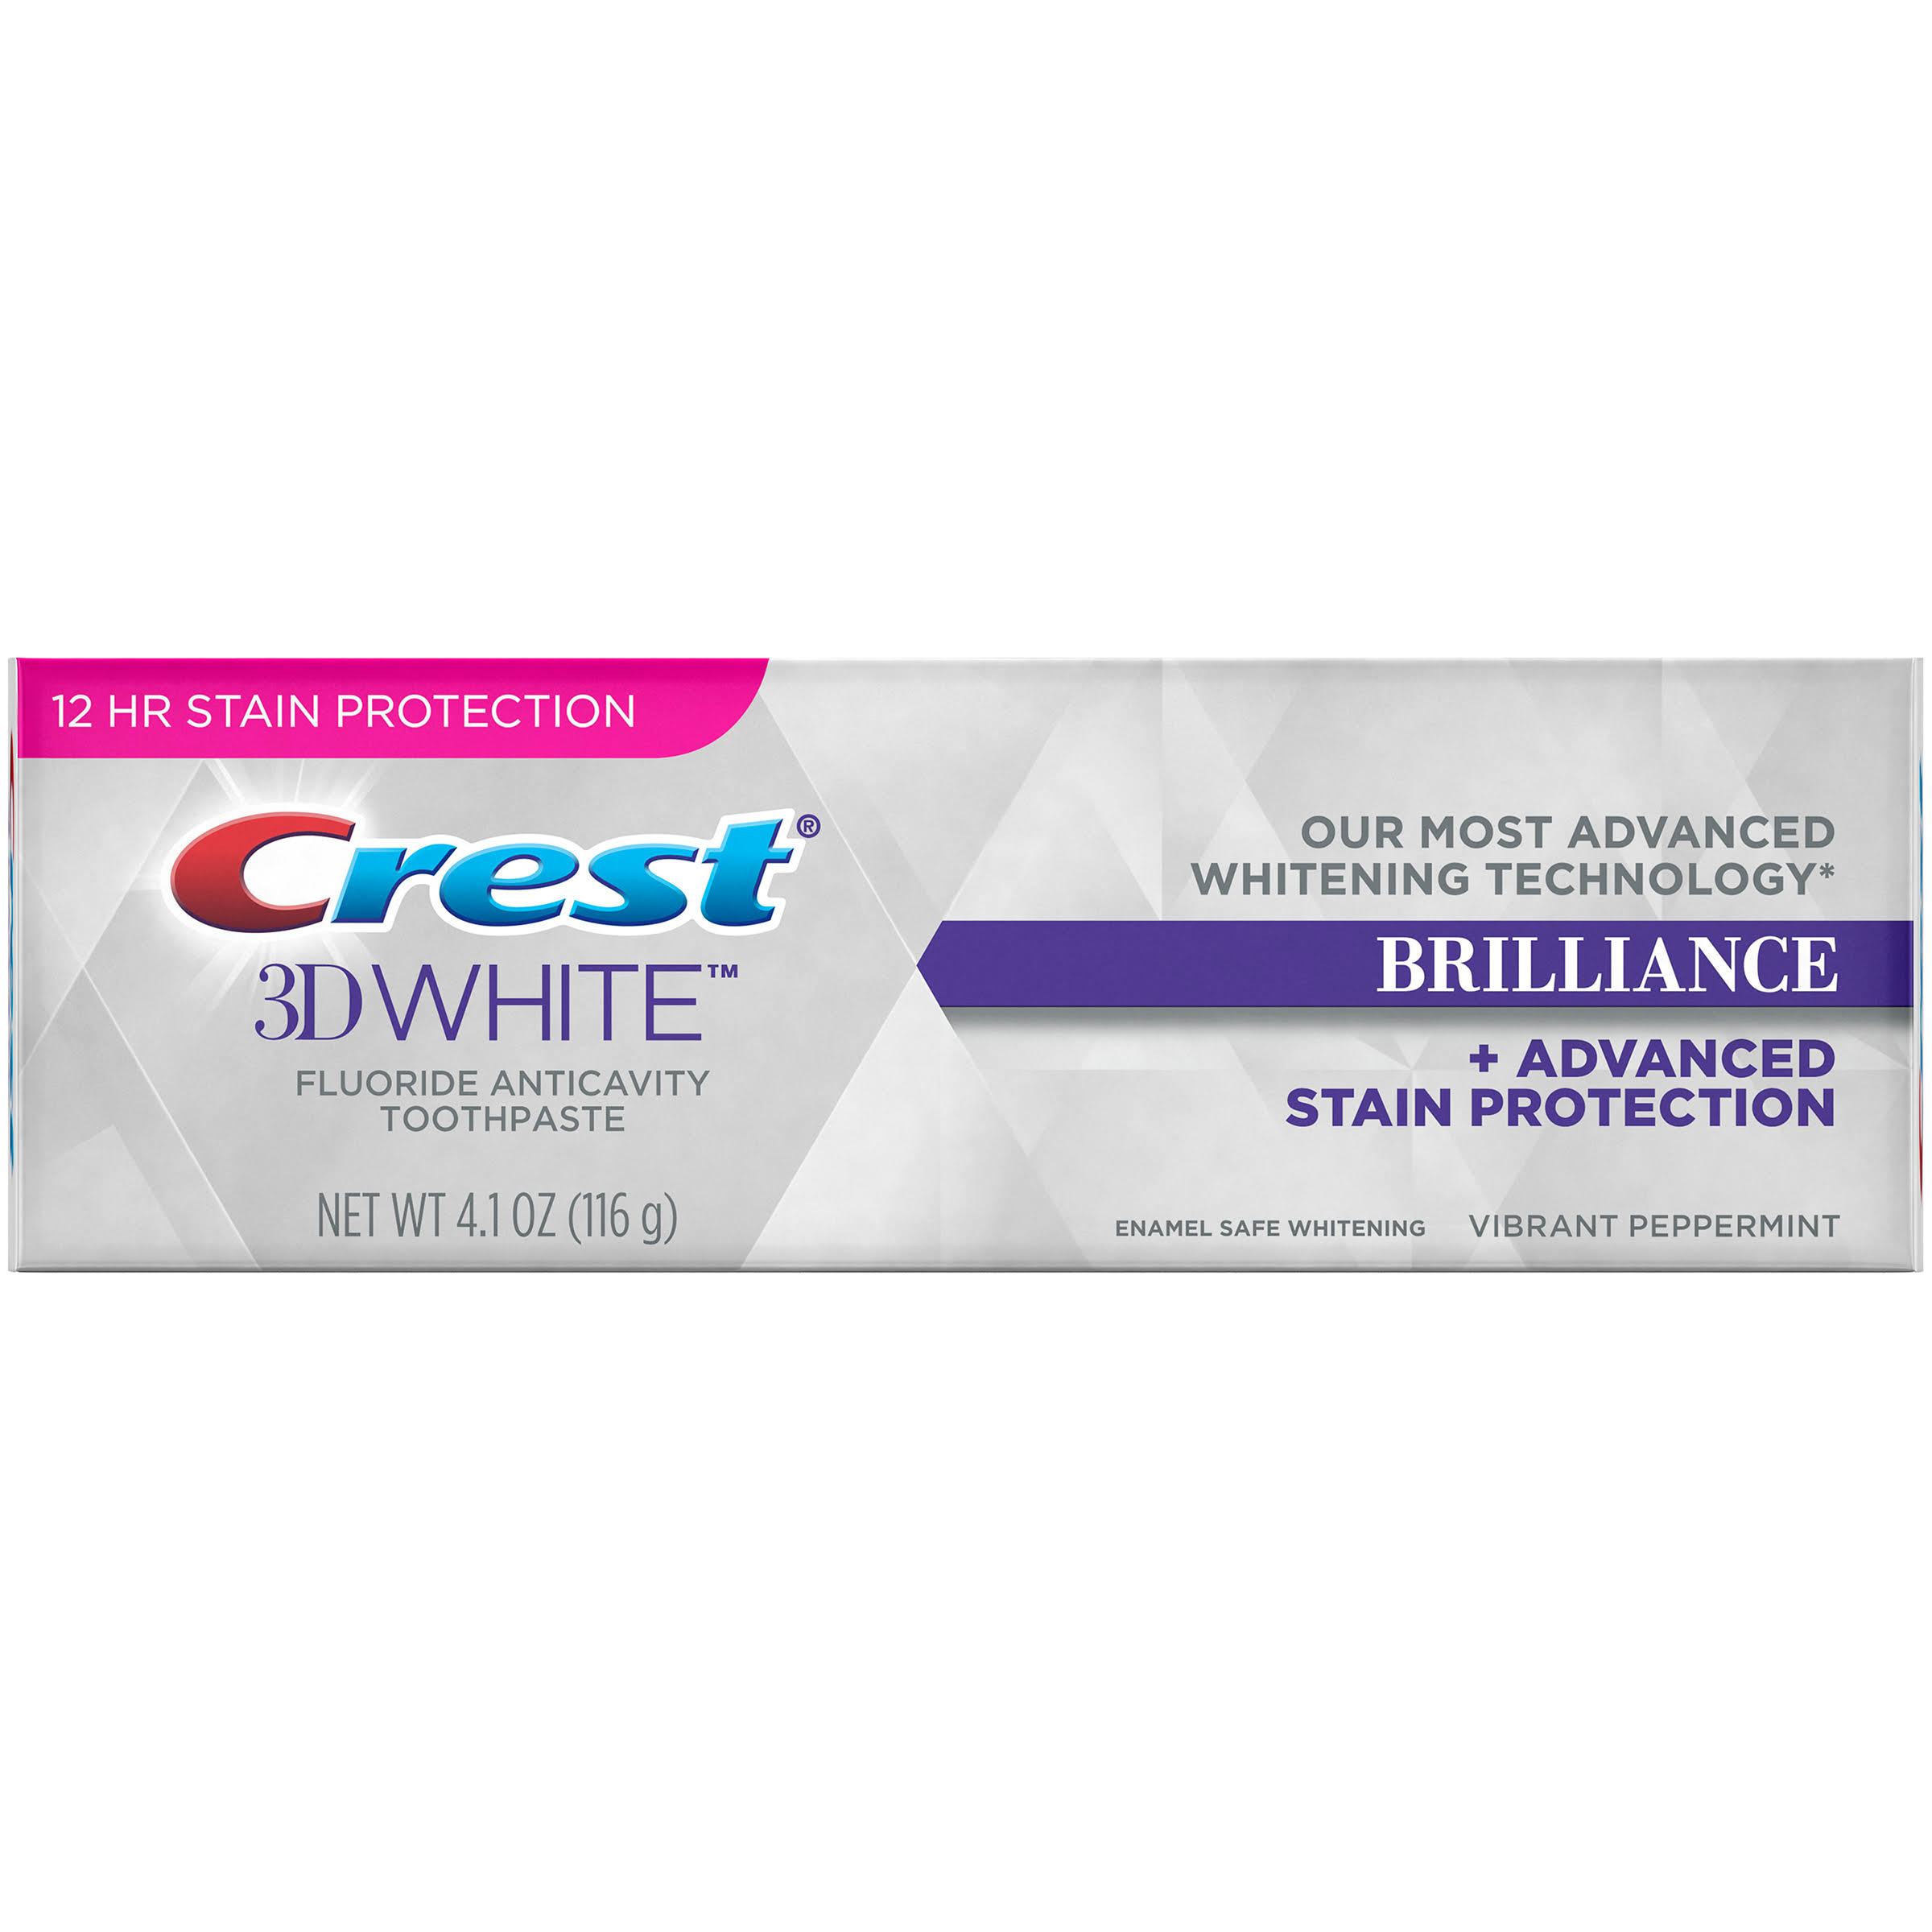 Crest 3D White Brilliance Vibrant Peppermint Fluoride Anticavity Toothpaste - 4.1 oz